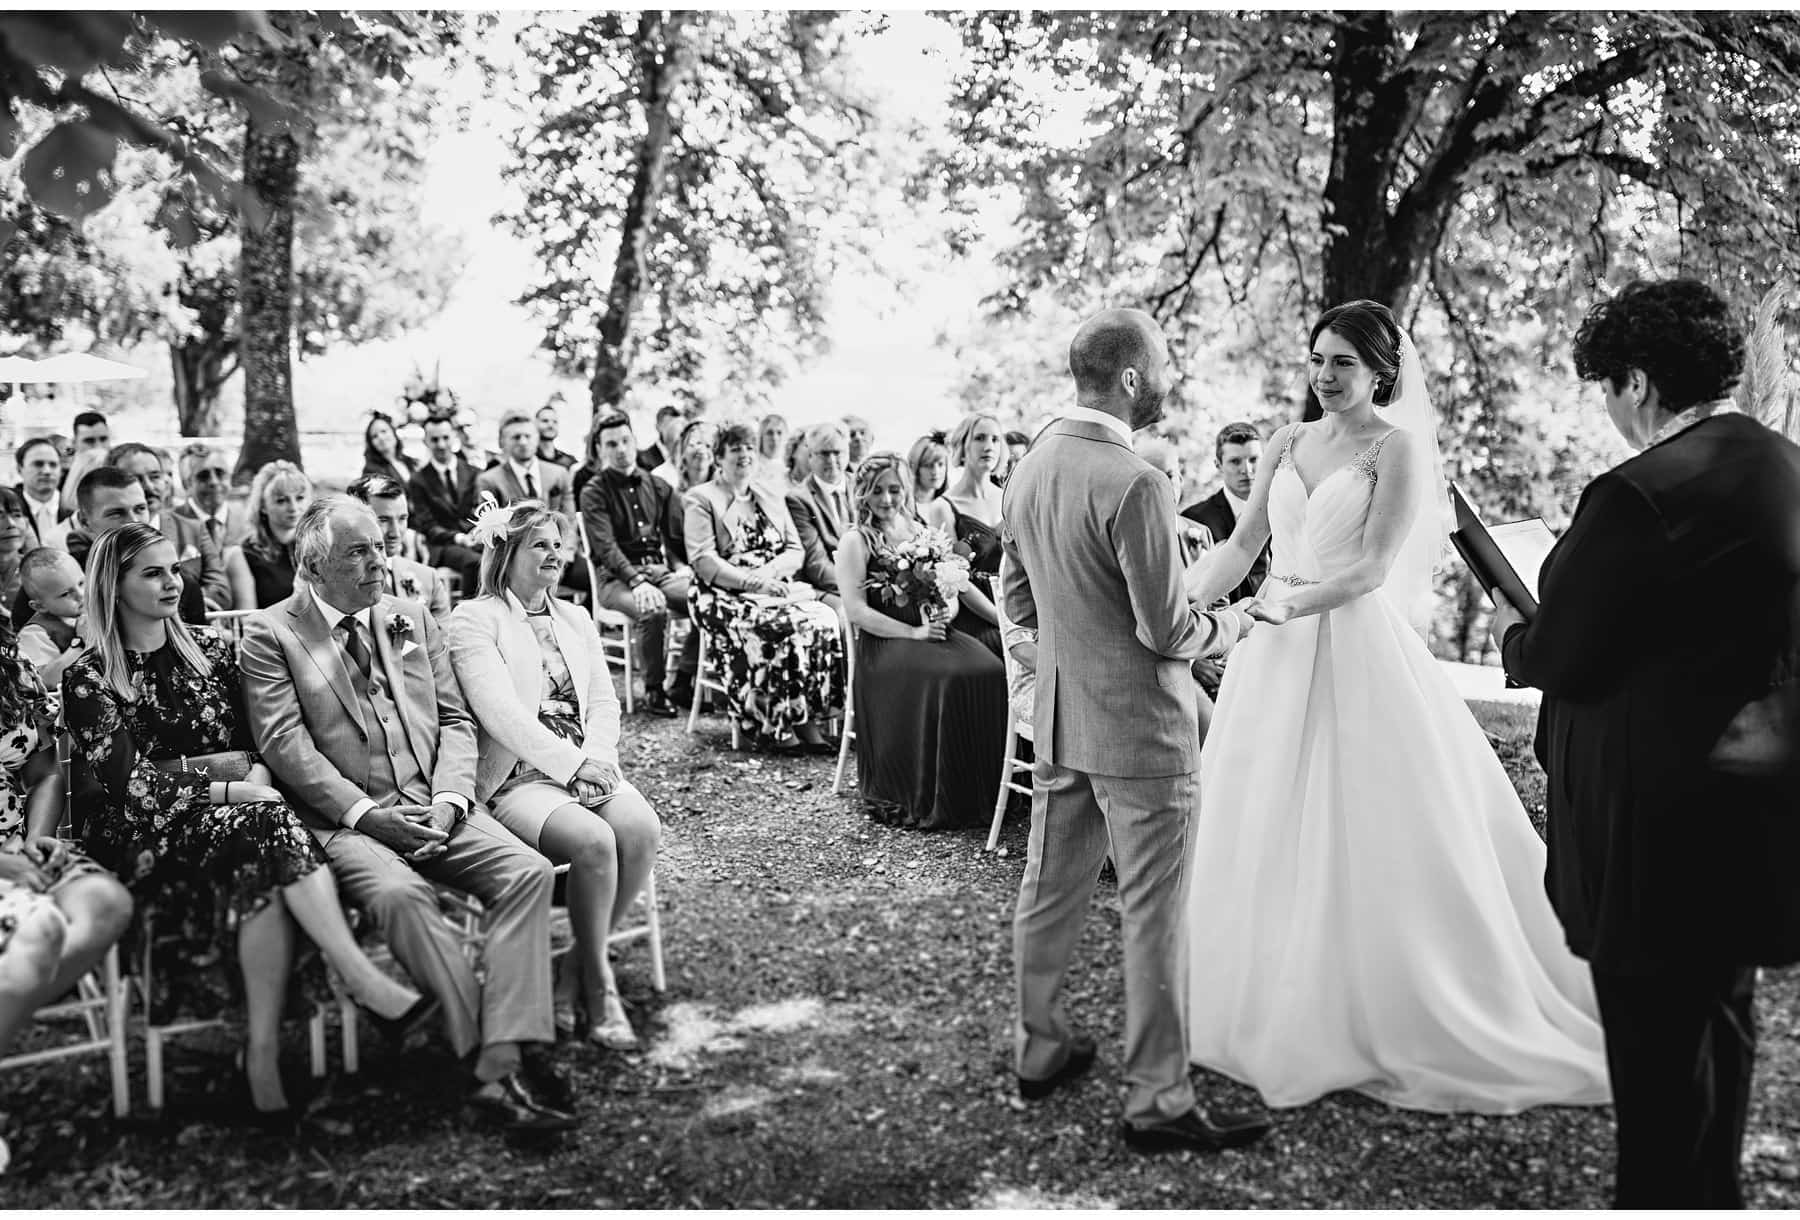 the bride & groom in the outdoor ceremony